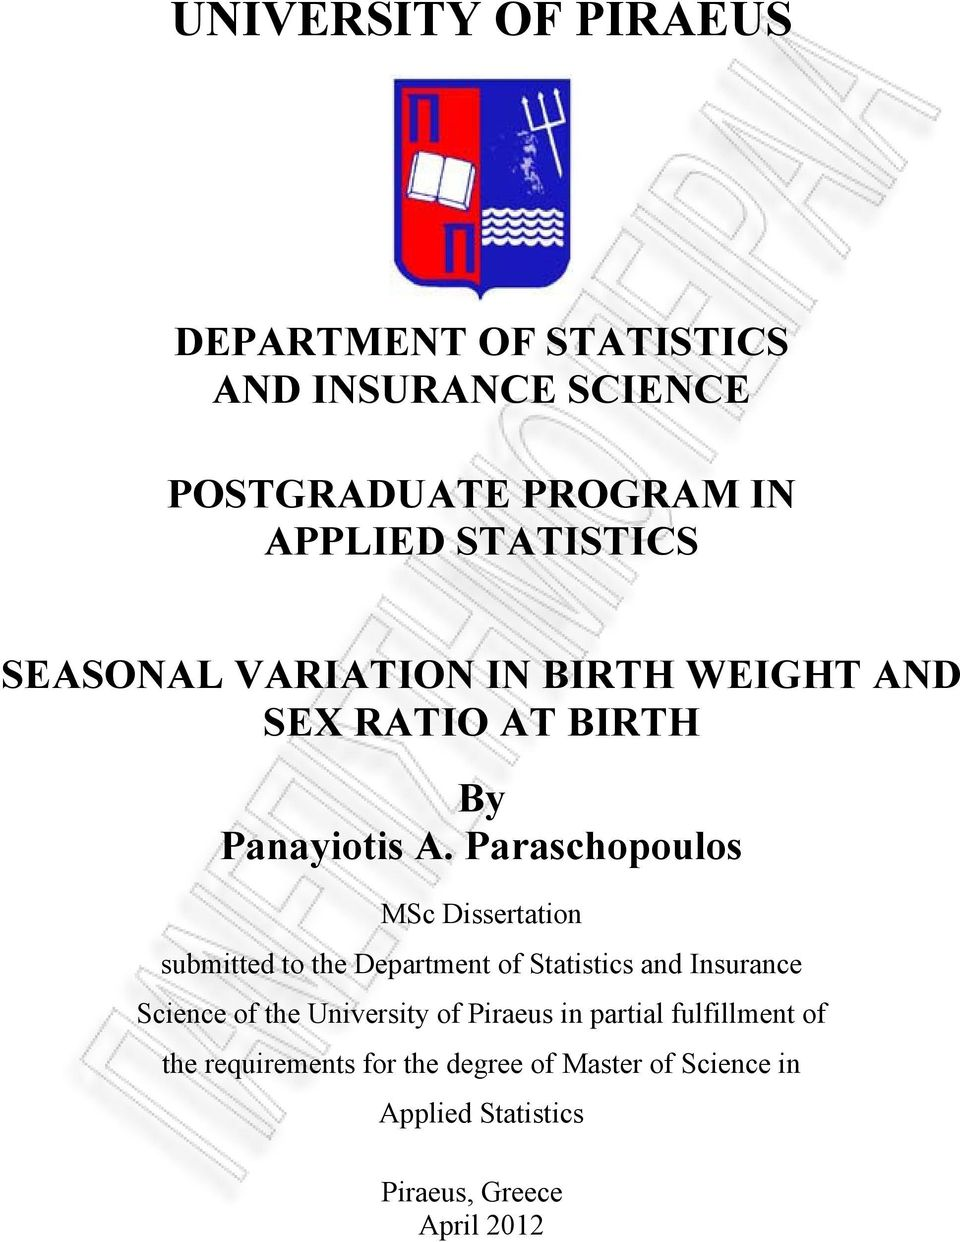 Paraschopoulos MSc Dissertation submitted to the Department of Statistics and Insurance Science of the